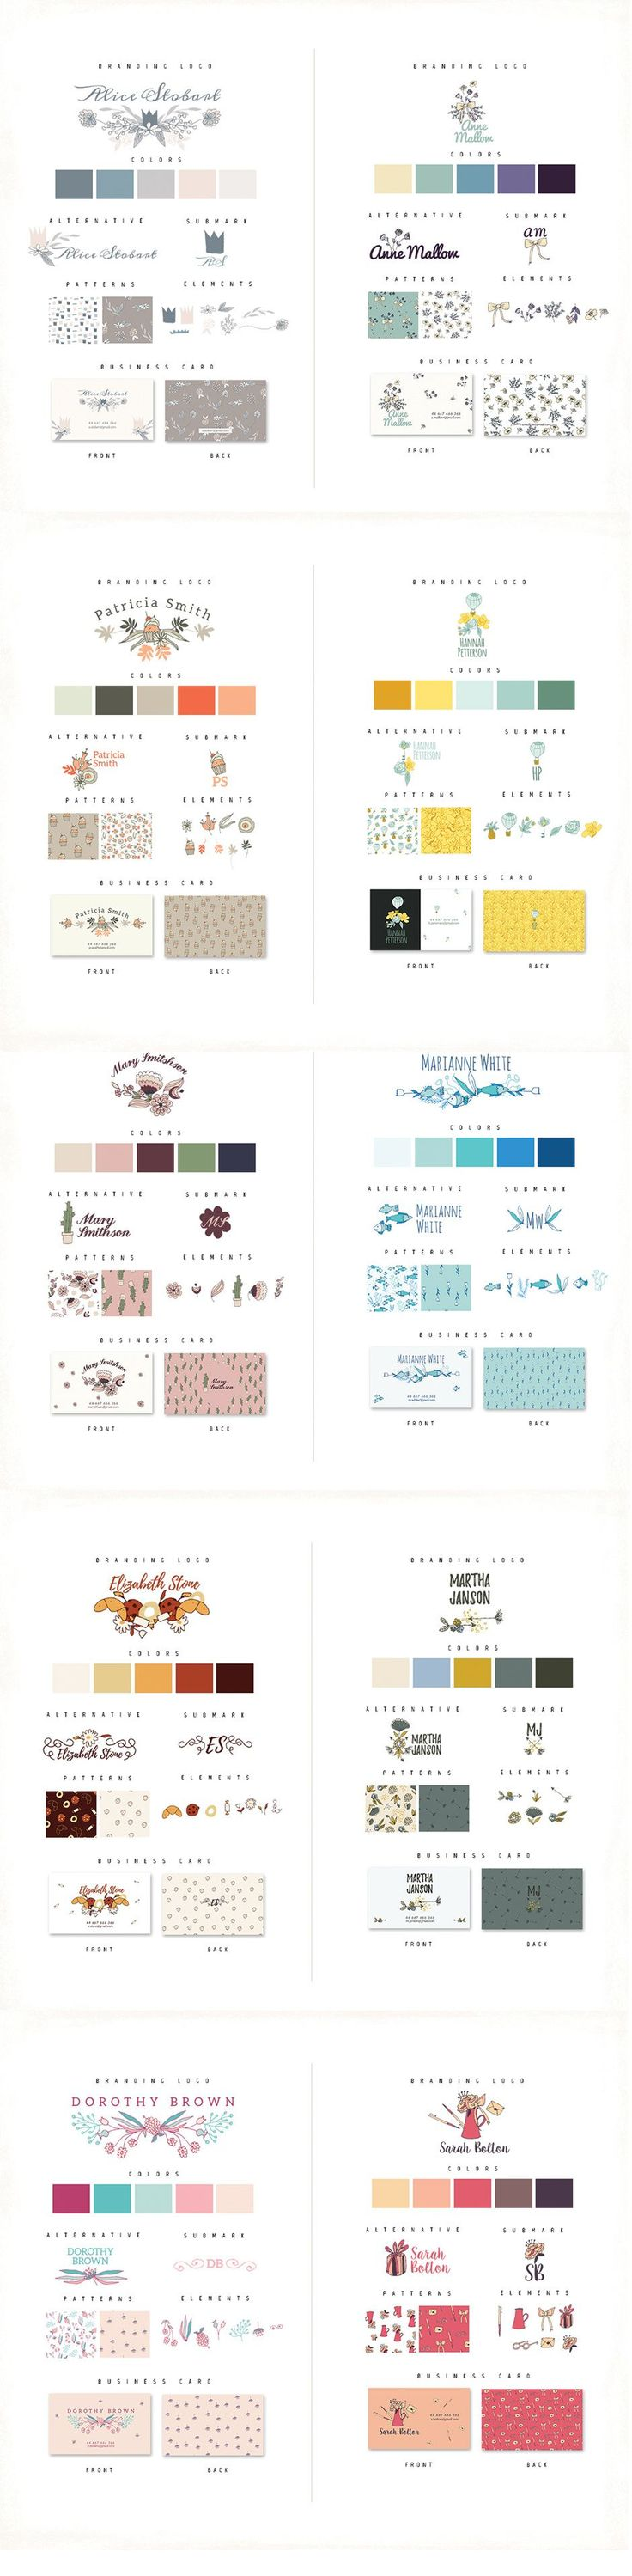 Get Creative With These Personal Branding Logos I present Personal Branding Logos. In this case, you should use Adobe Illustrator and Photoshop. Included in this set: • 20 Packs in this set • Logo and 2 alternatives – .EPS files • 2 Seamless patterns – .EPS and .JPG files (.JPG: 3600x3600px) • Business card – ... read more